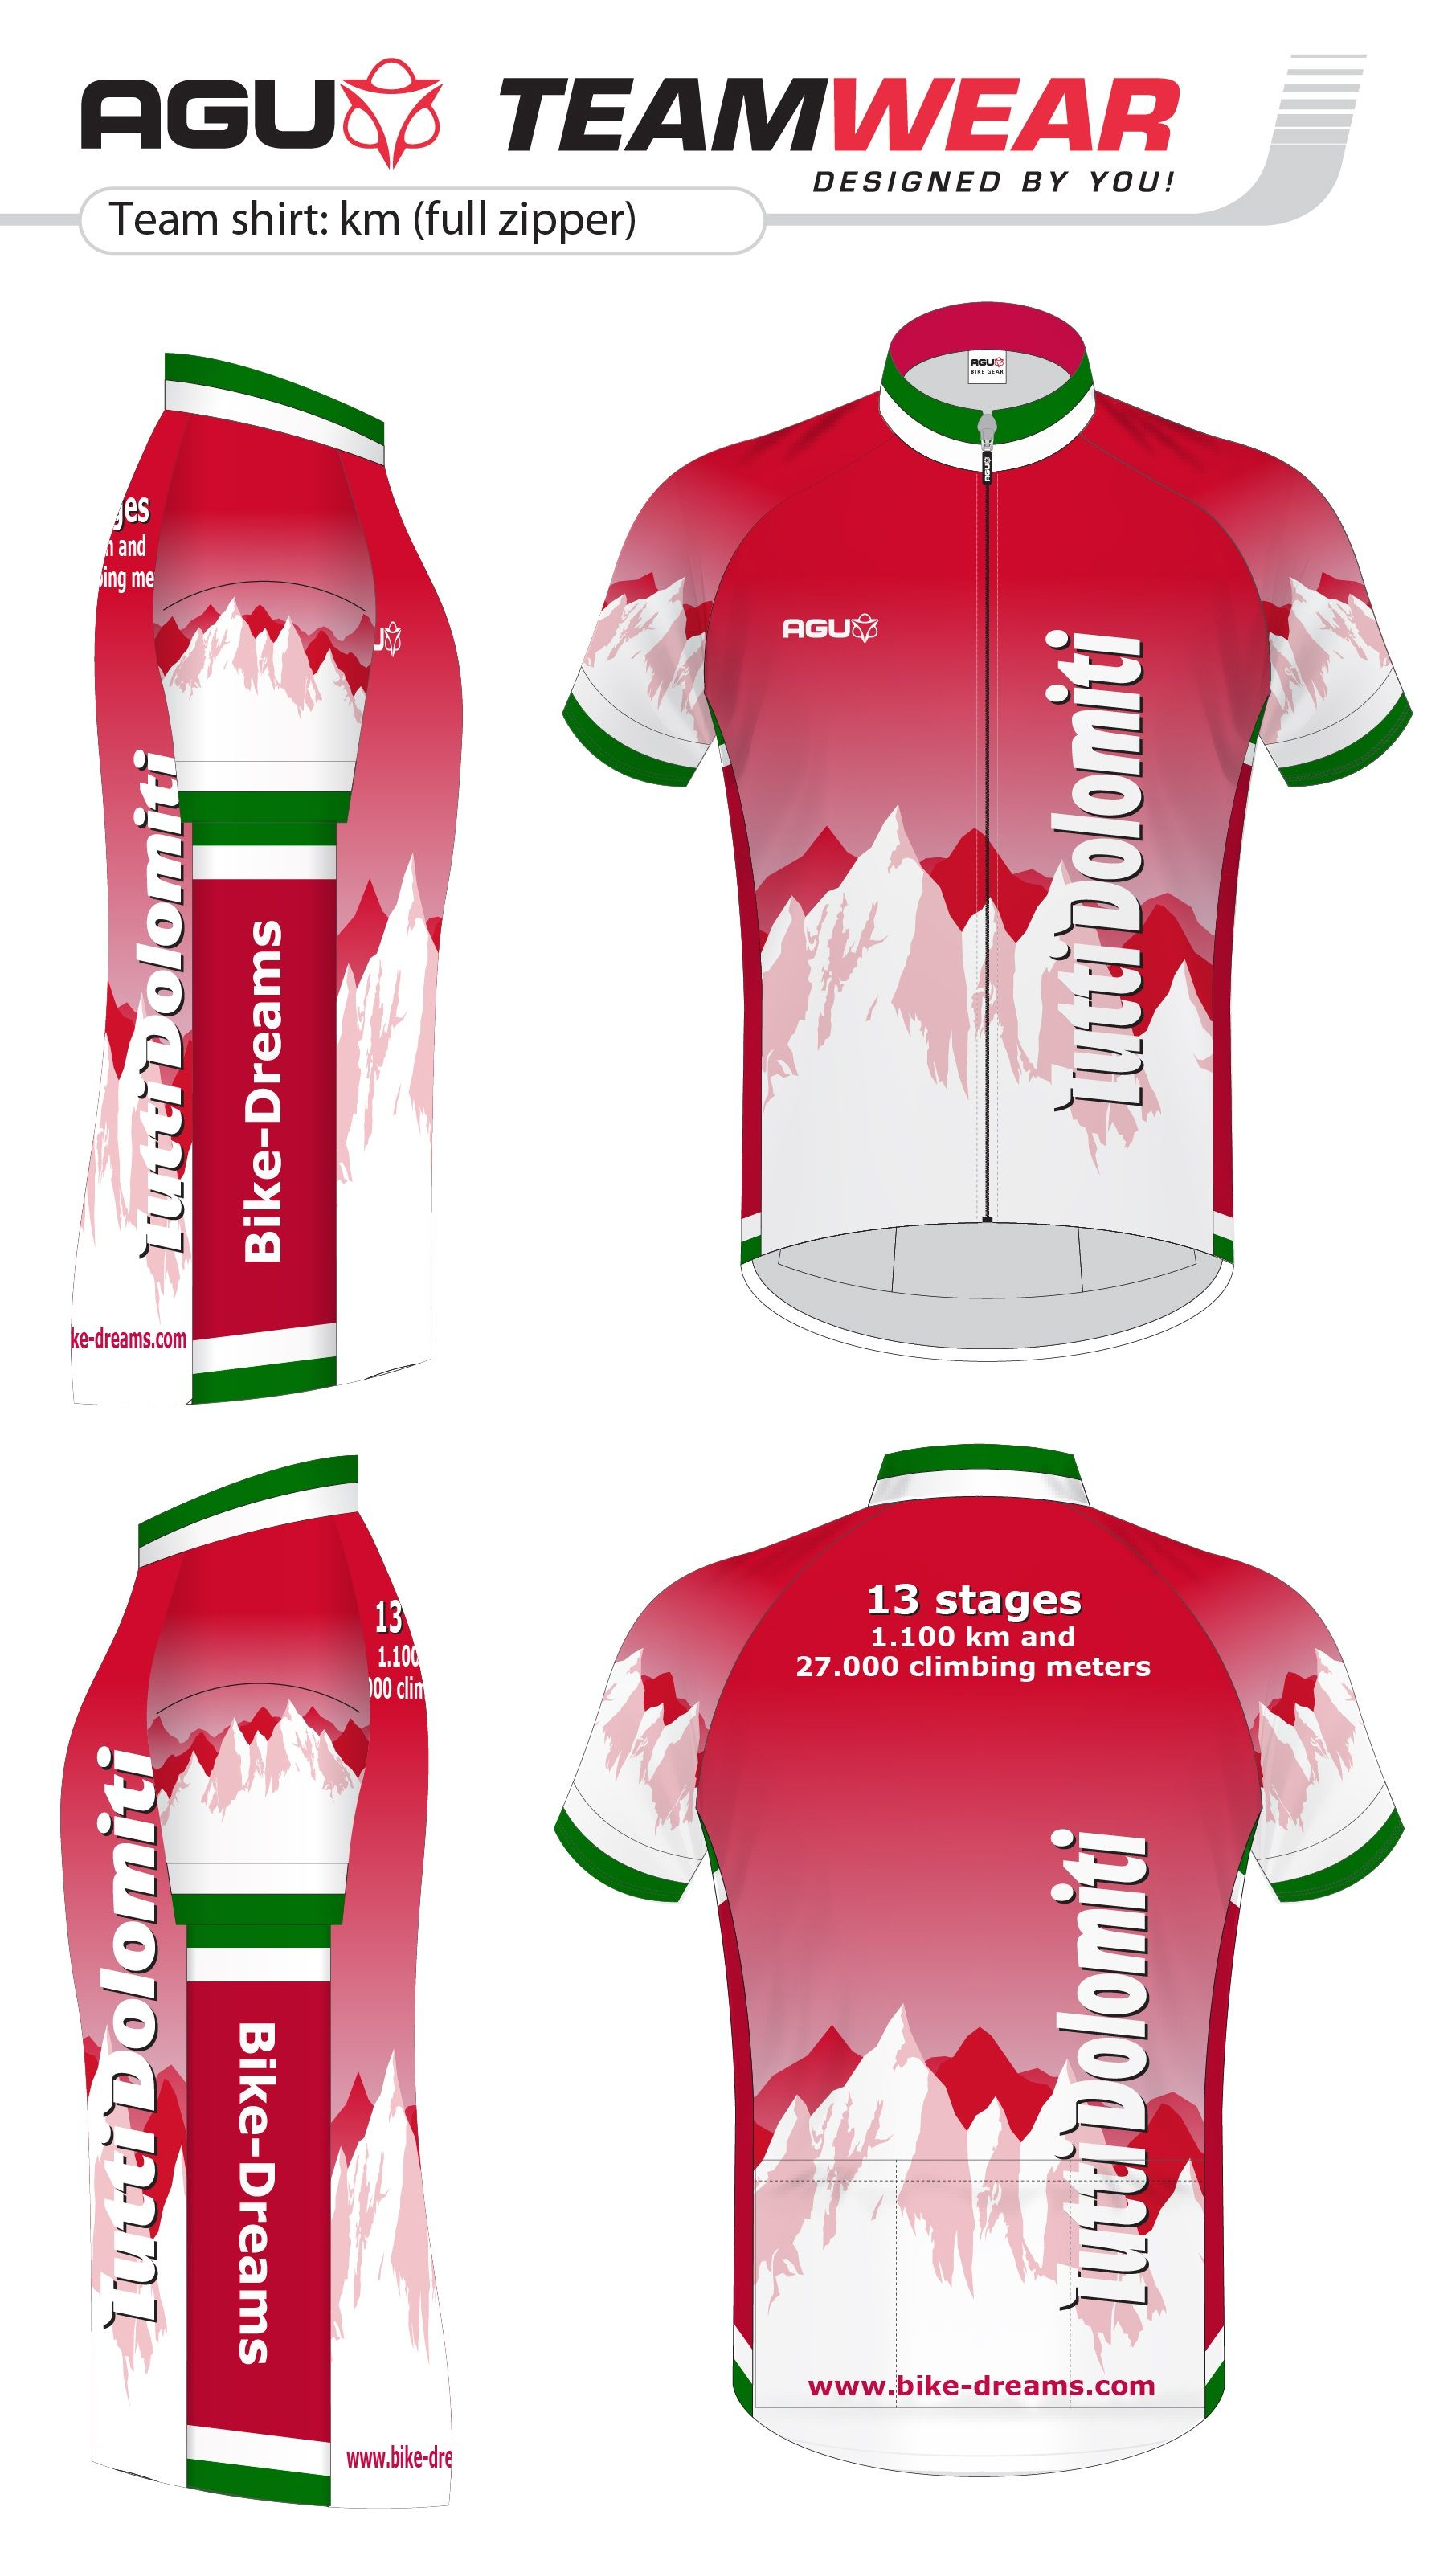 Cycling shirt design your own - Design Your Own Cycling Jersey By Agu Customized Cycling Apparel Designed For Bike